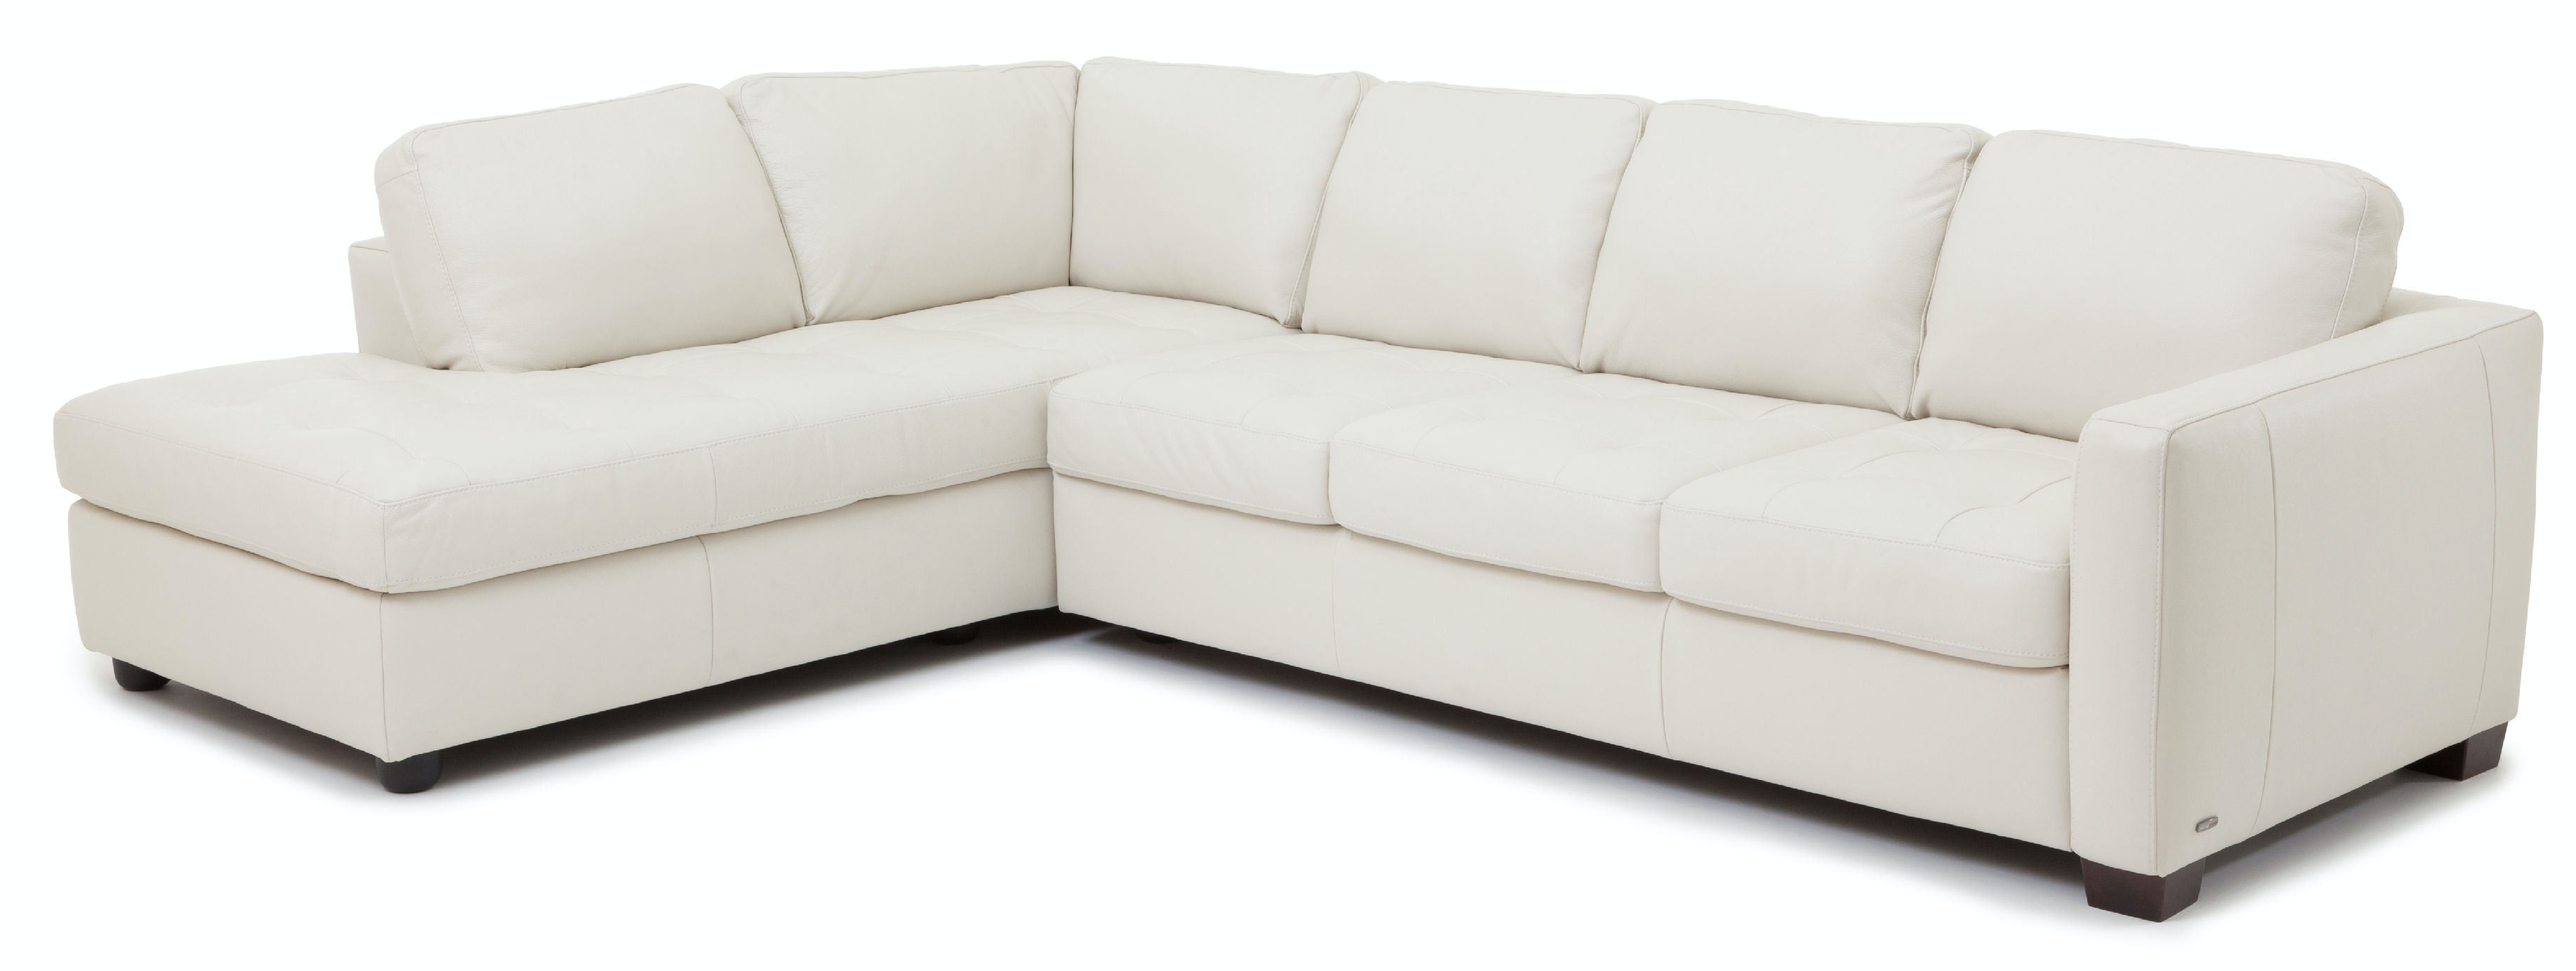 Denver 2-Piece Leather Sectional - IVORY  sc 1 st  Star Furniture : natuzzi white leather sectional - Sectionals, Sofas & Couches